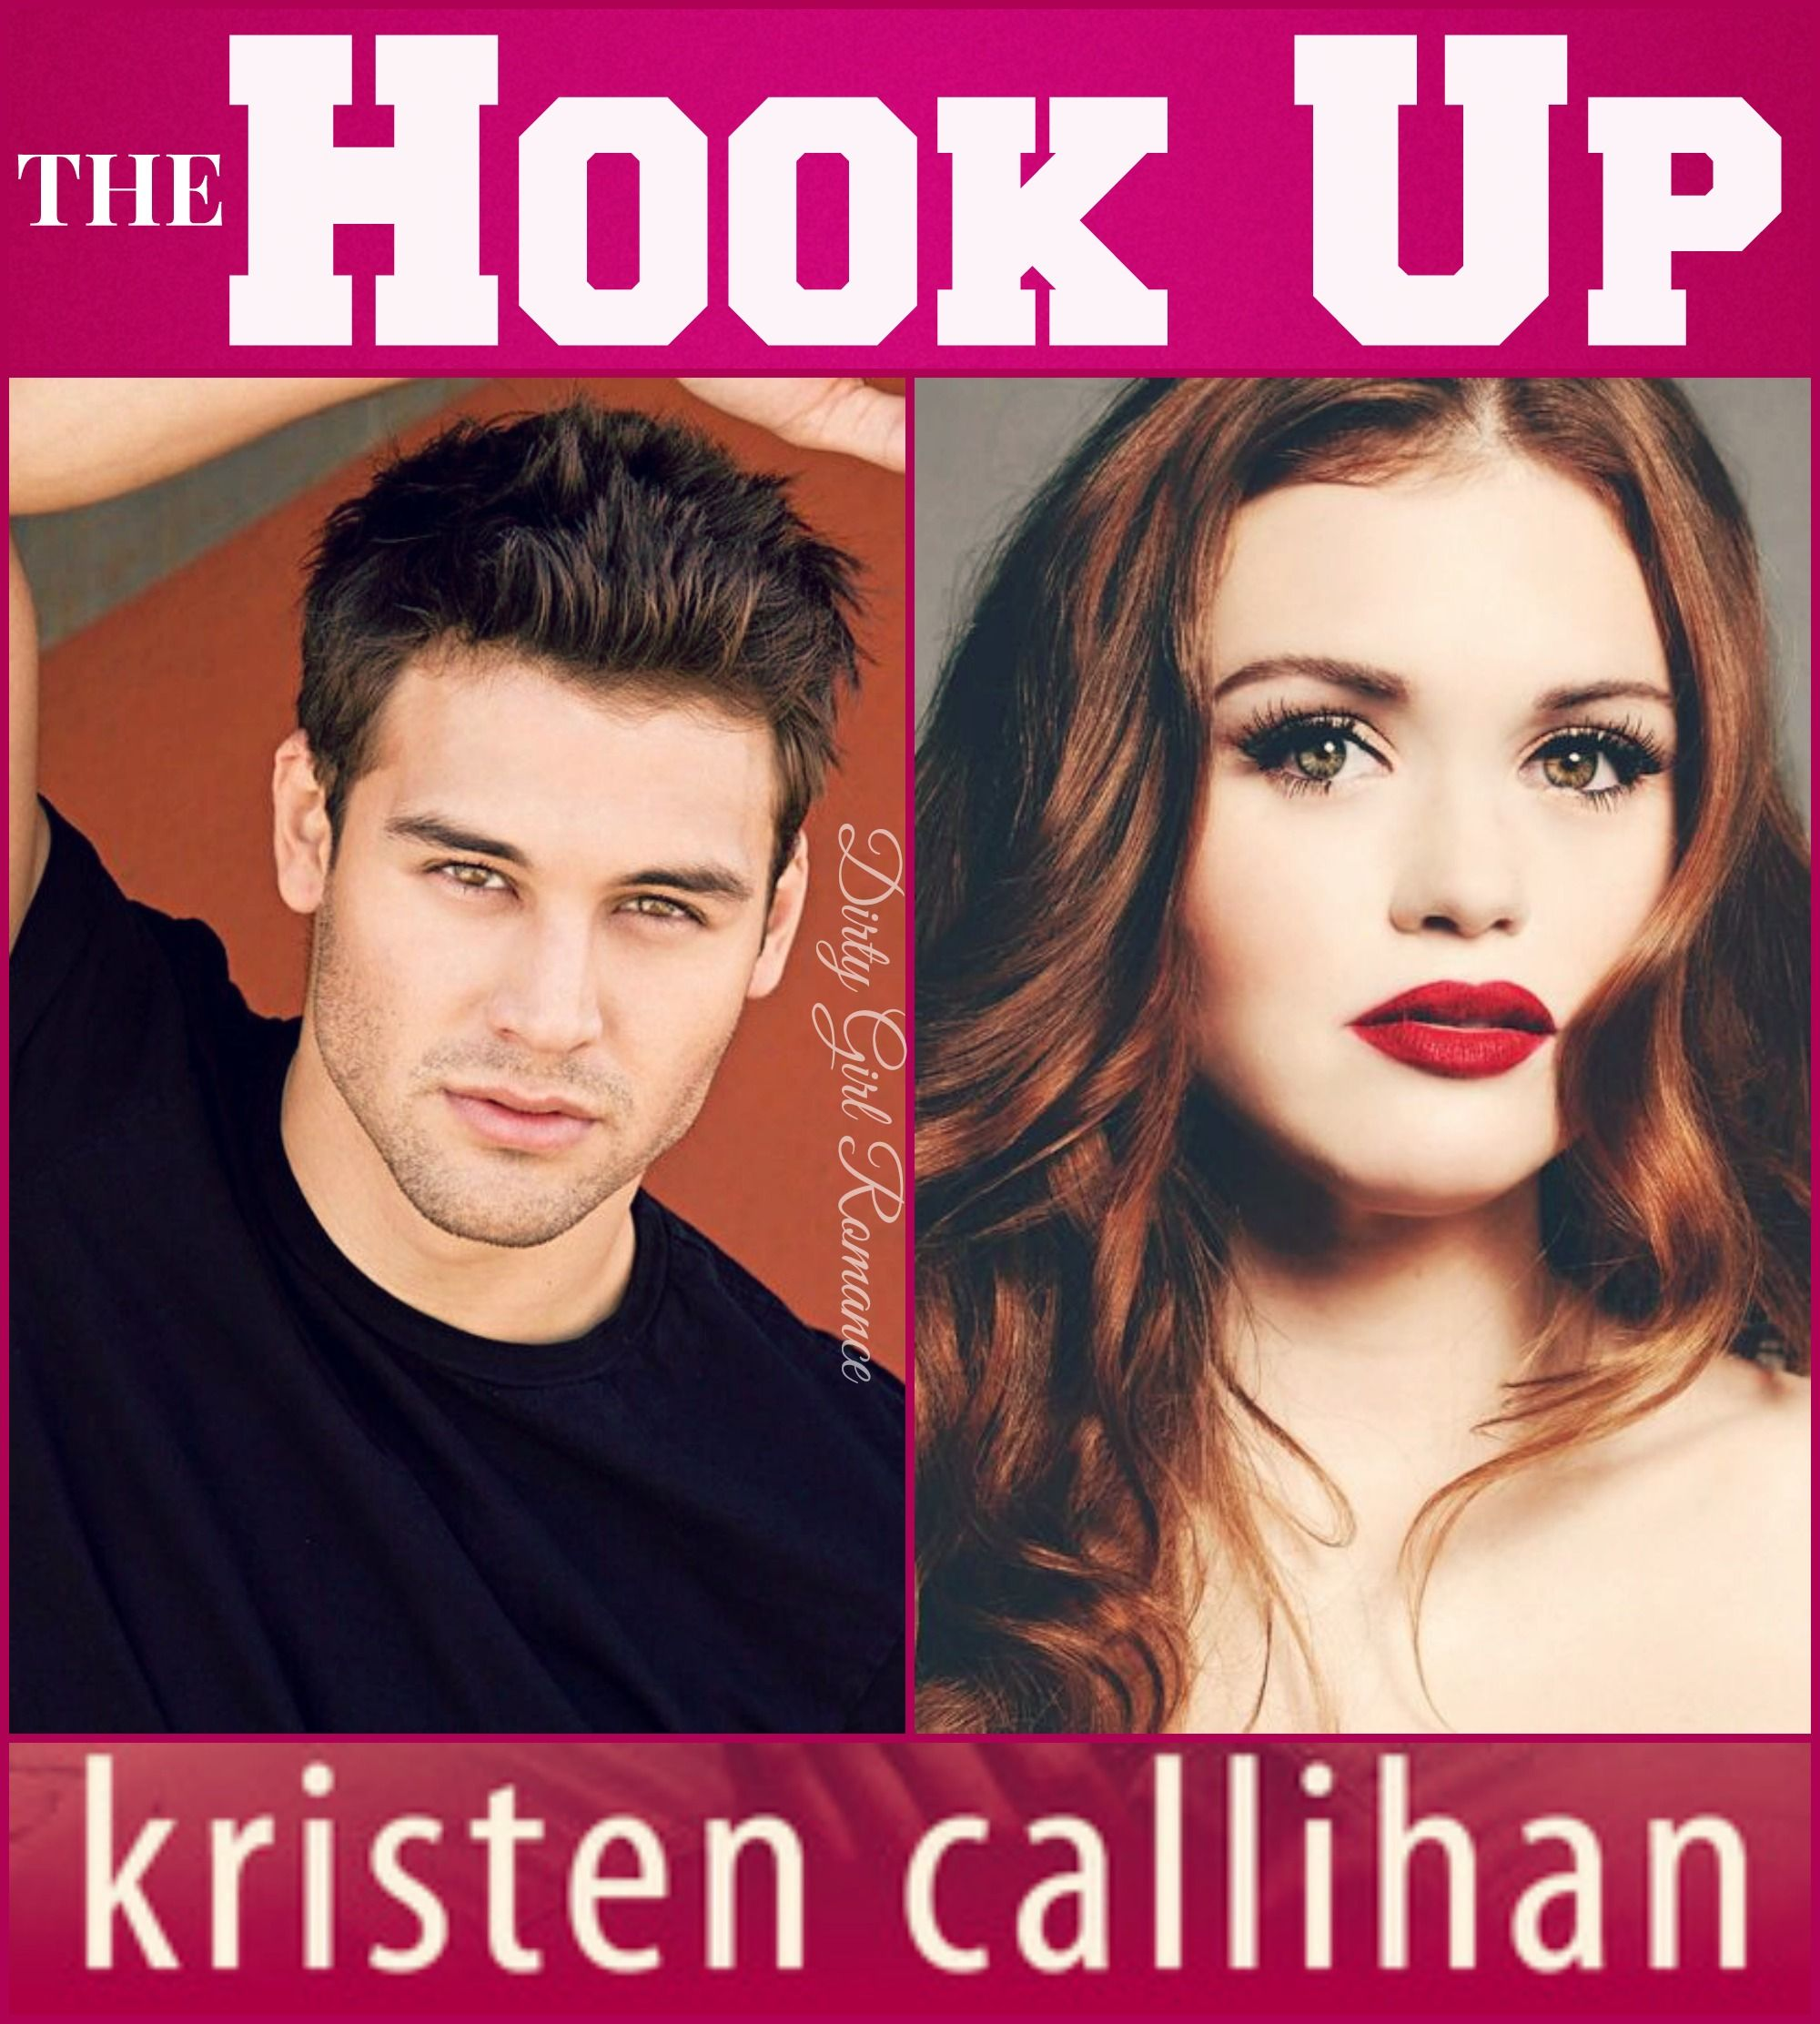 Up Of Step Are Hookup Revolution Stars The